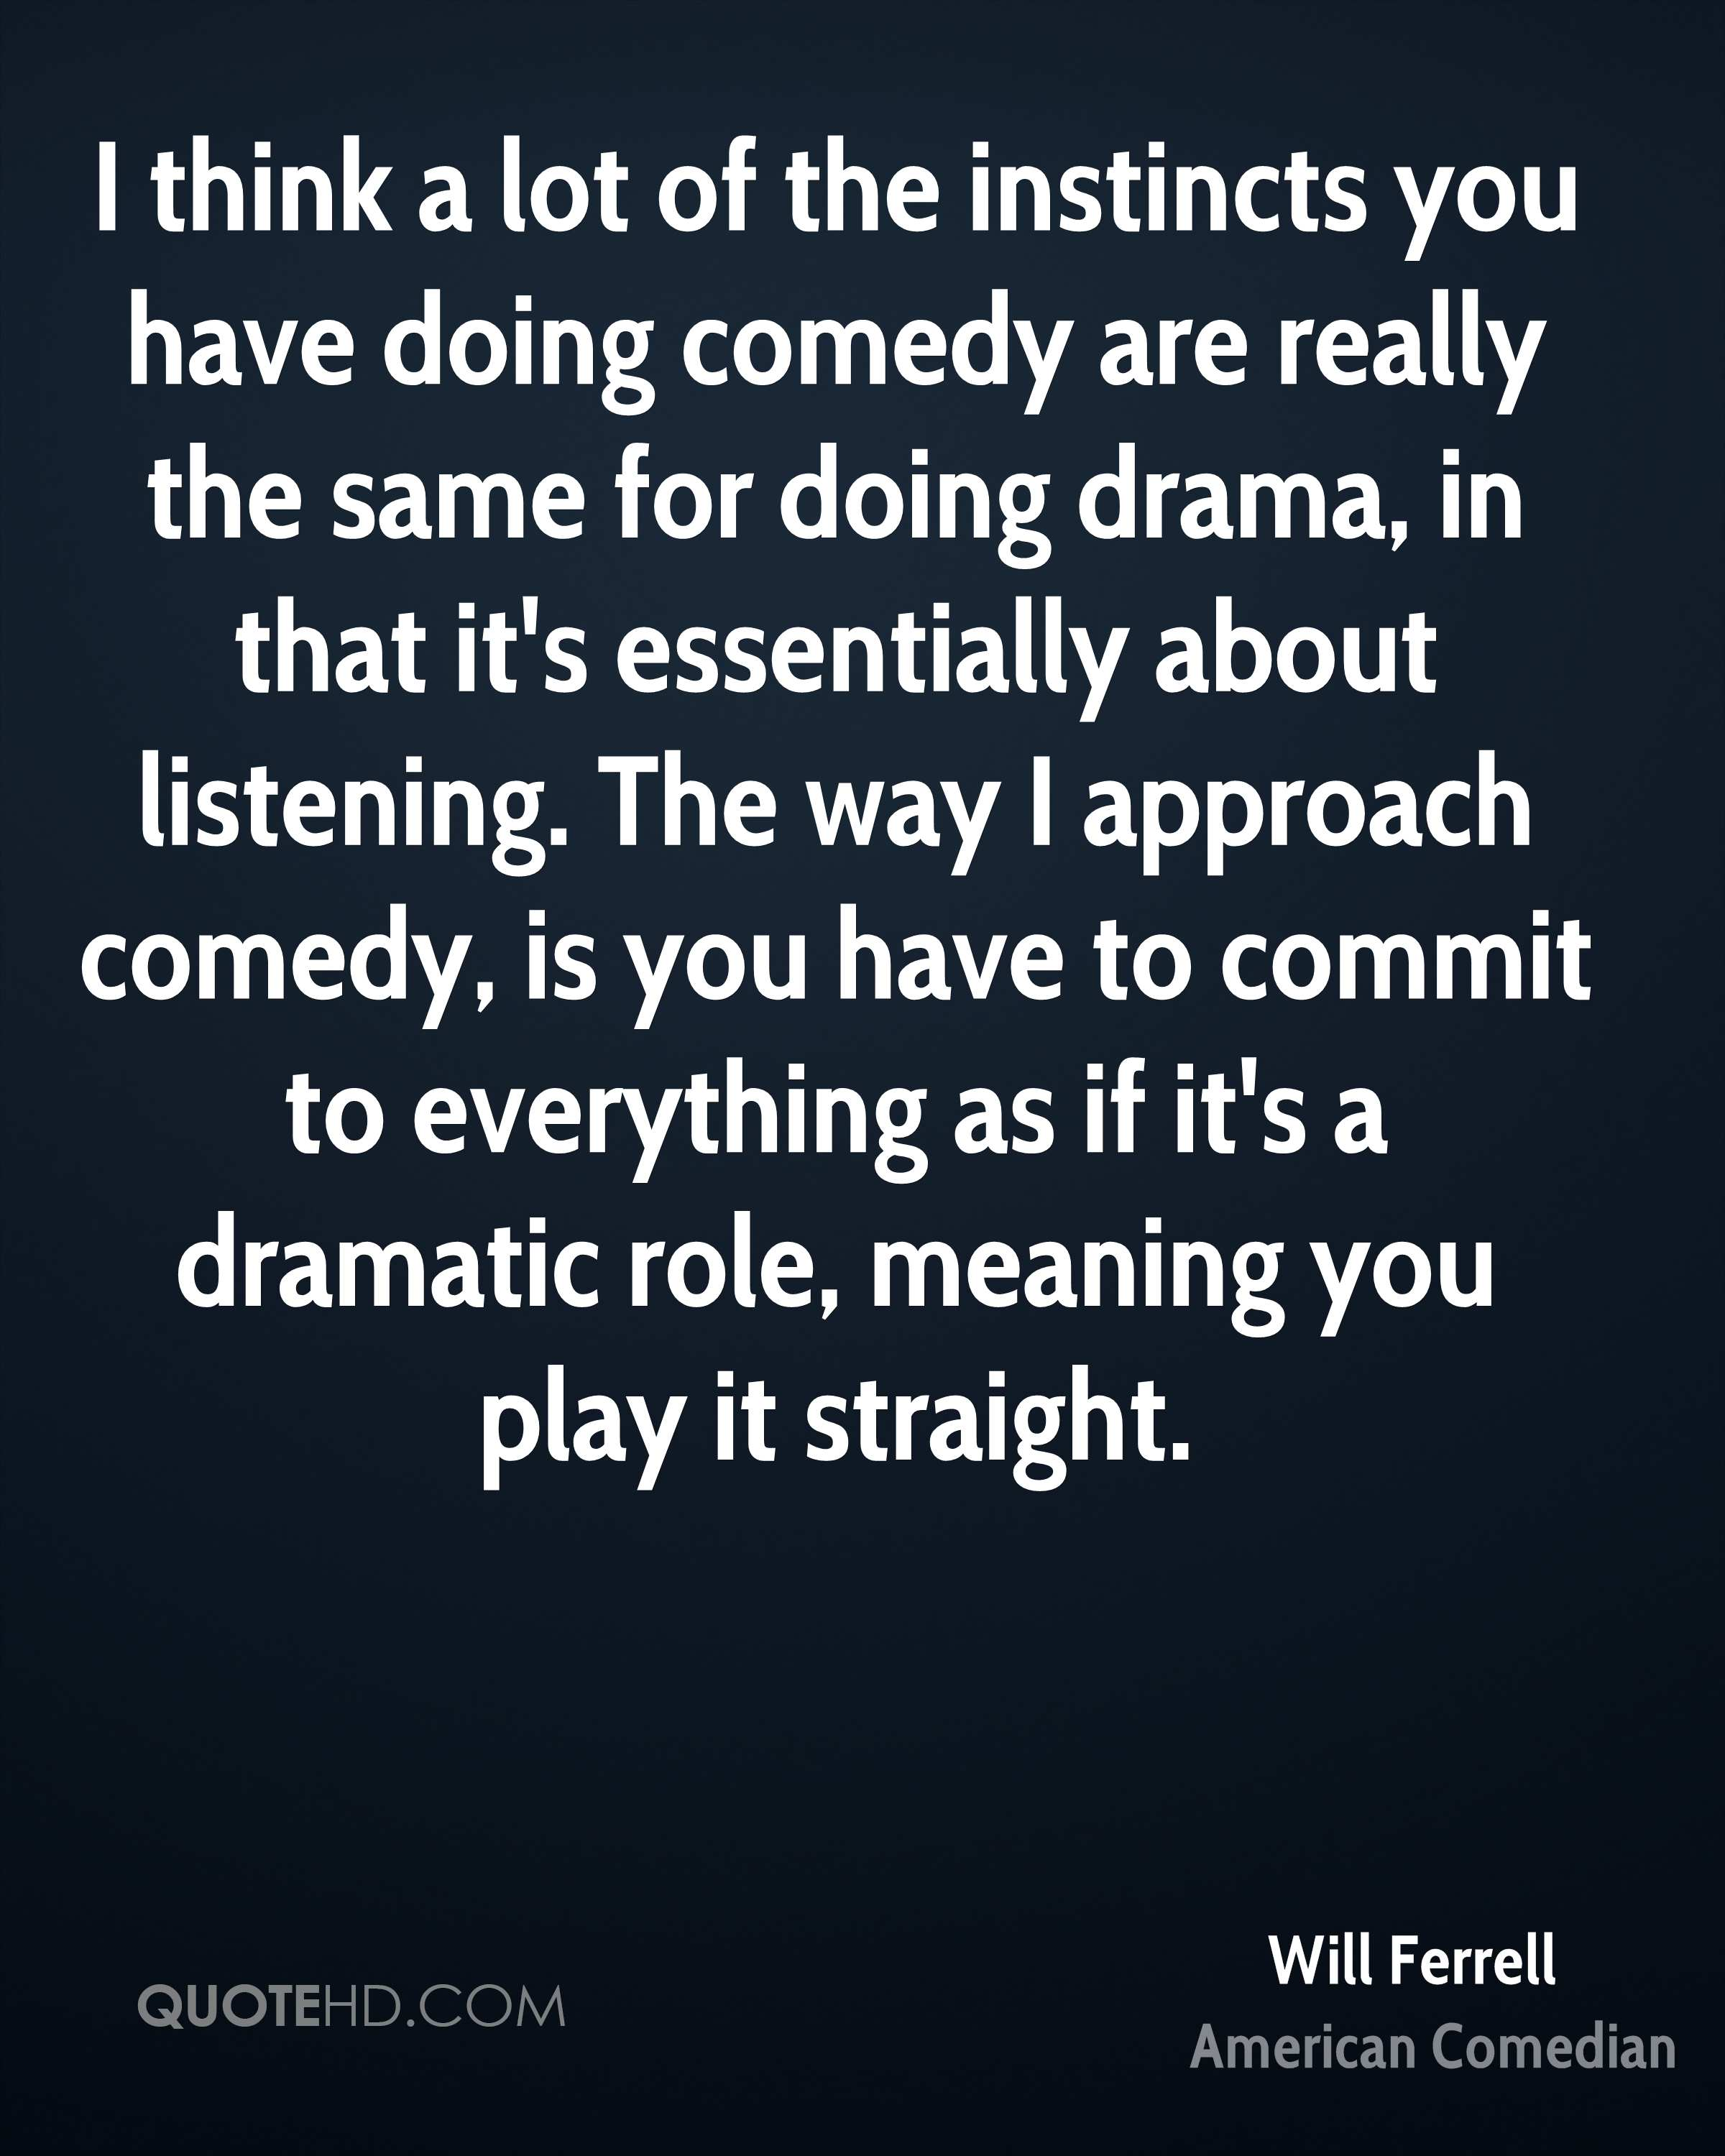 I think a lot of the instincts you have doing comedy are really the same for doing drama, in that it's essentially about listening. The way I approach comedy, is you have to commit to everything as if it's a dramatic role, meaning you play it straight.